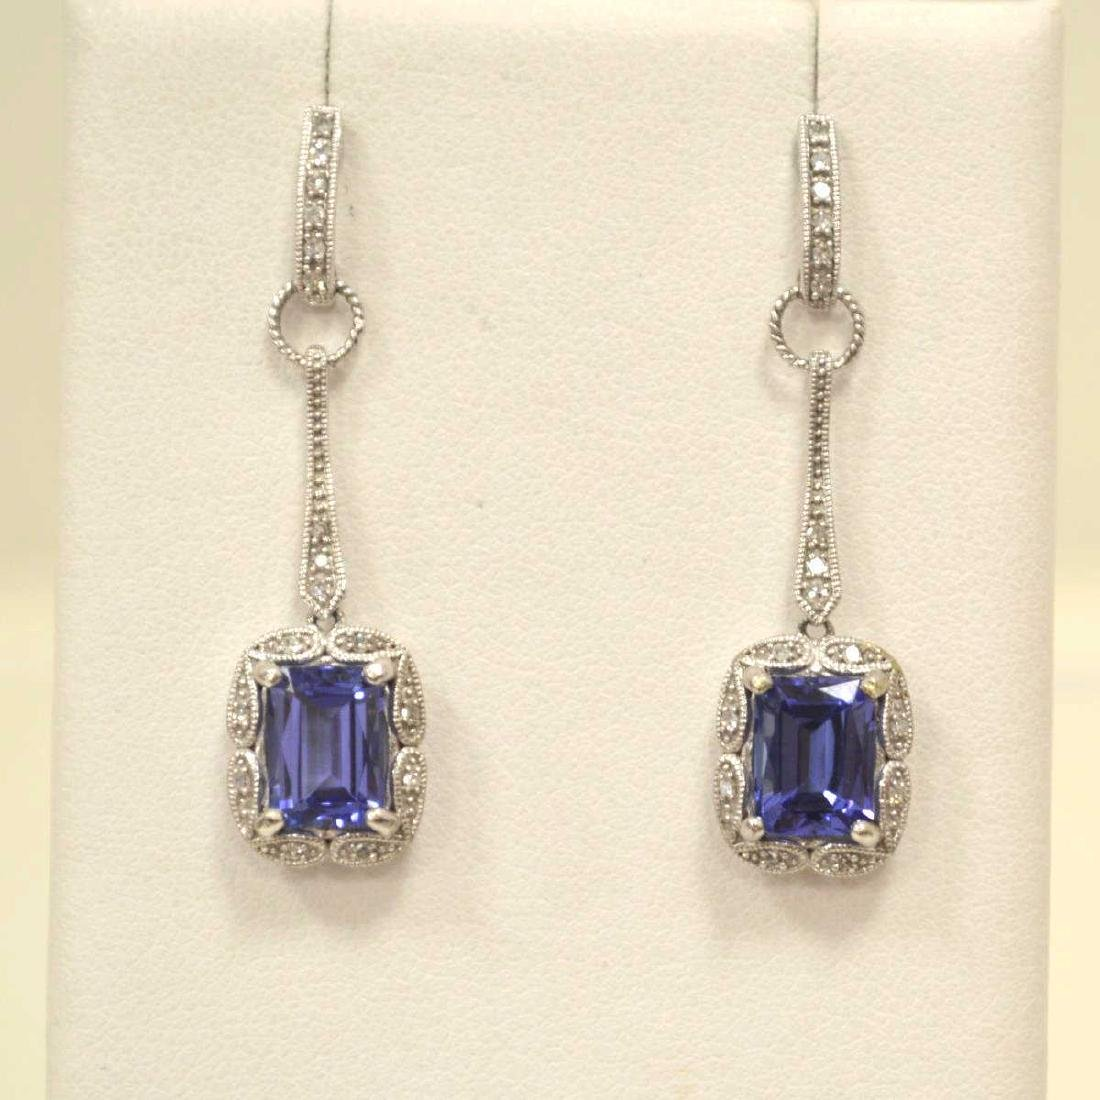 10kt white gold tanzanite and diamond earrings